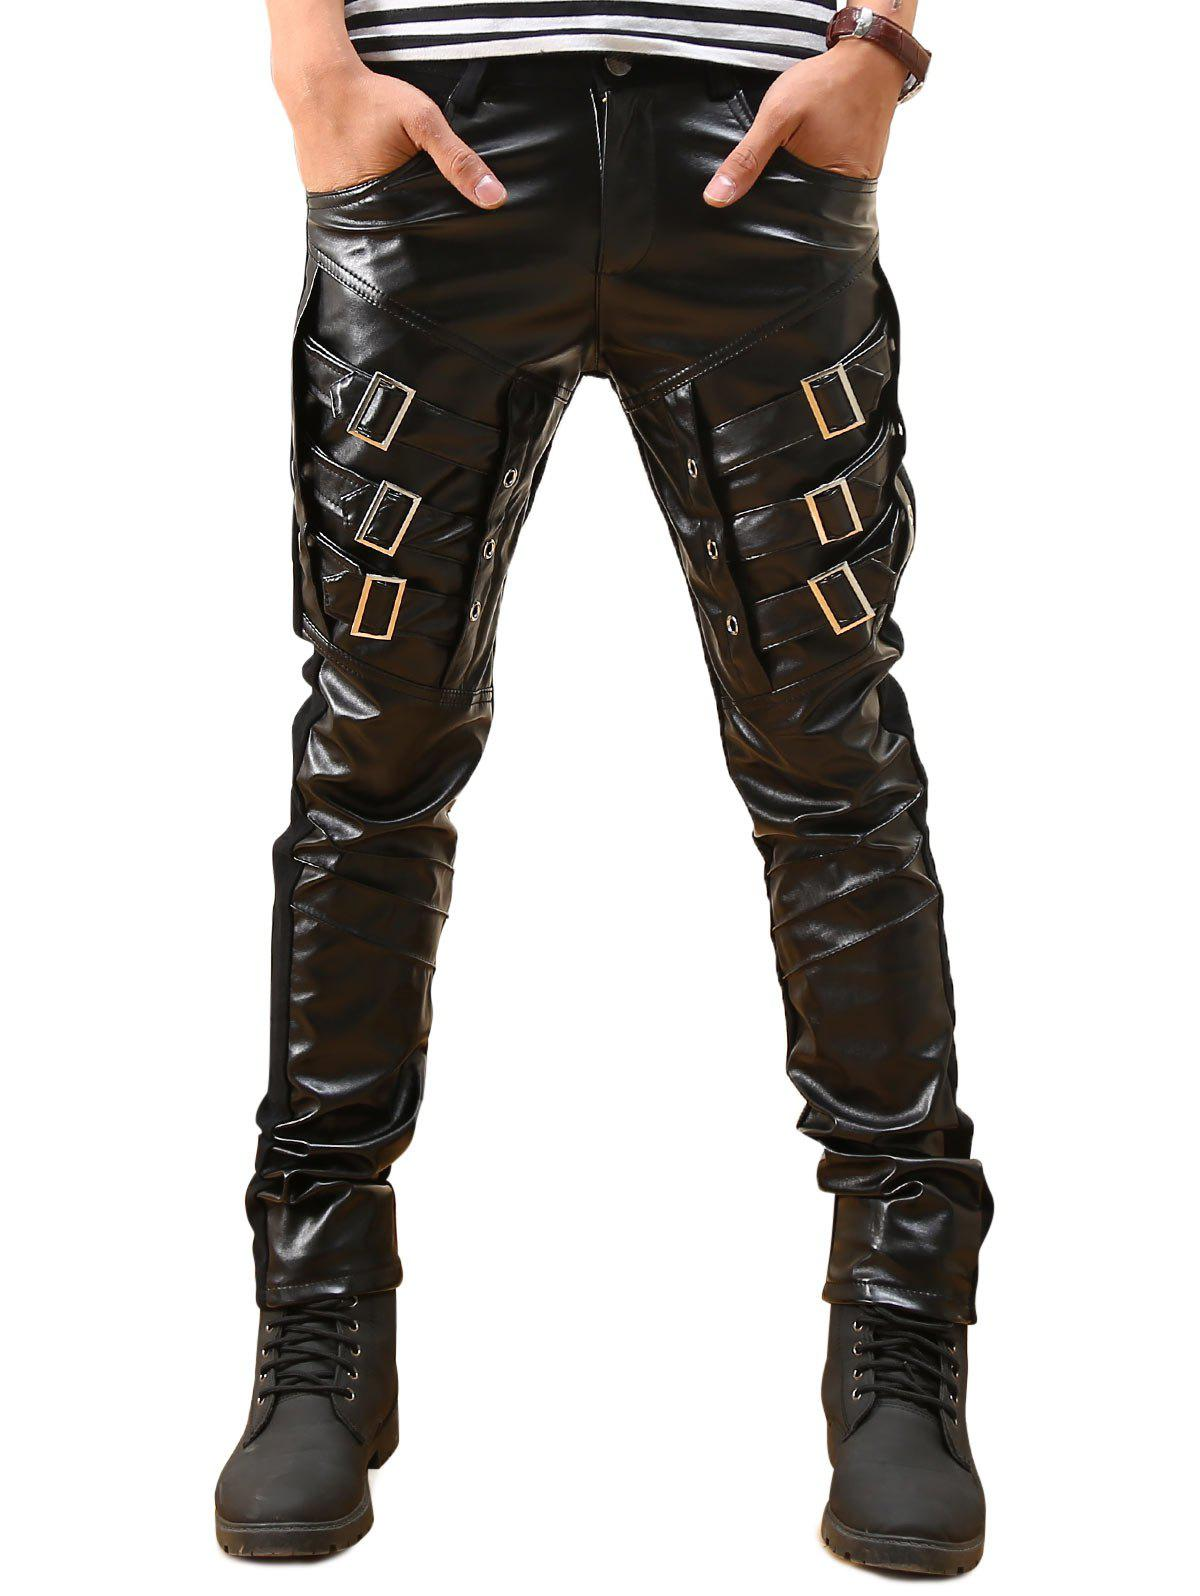 Buckled Skinny Faux Leather Pants - BLACK 32